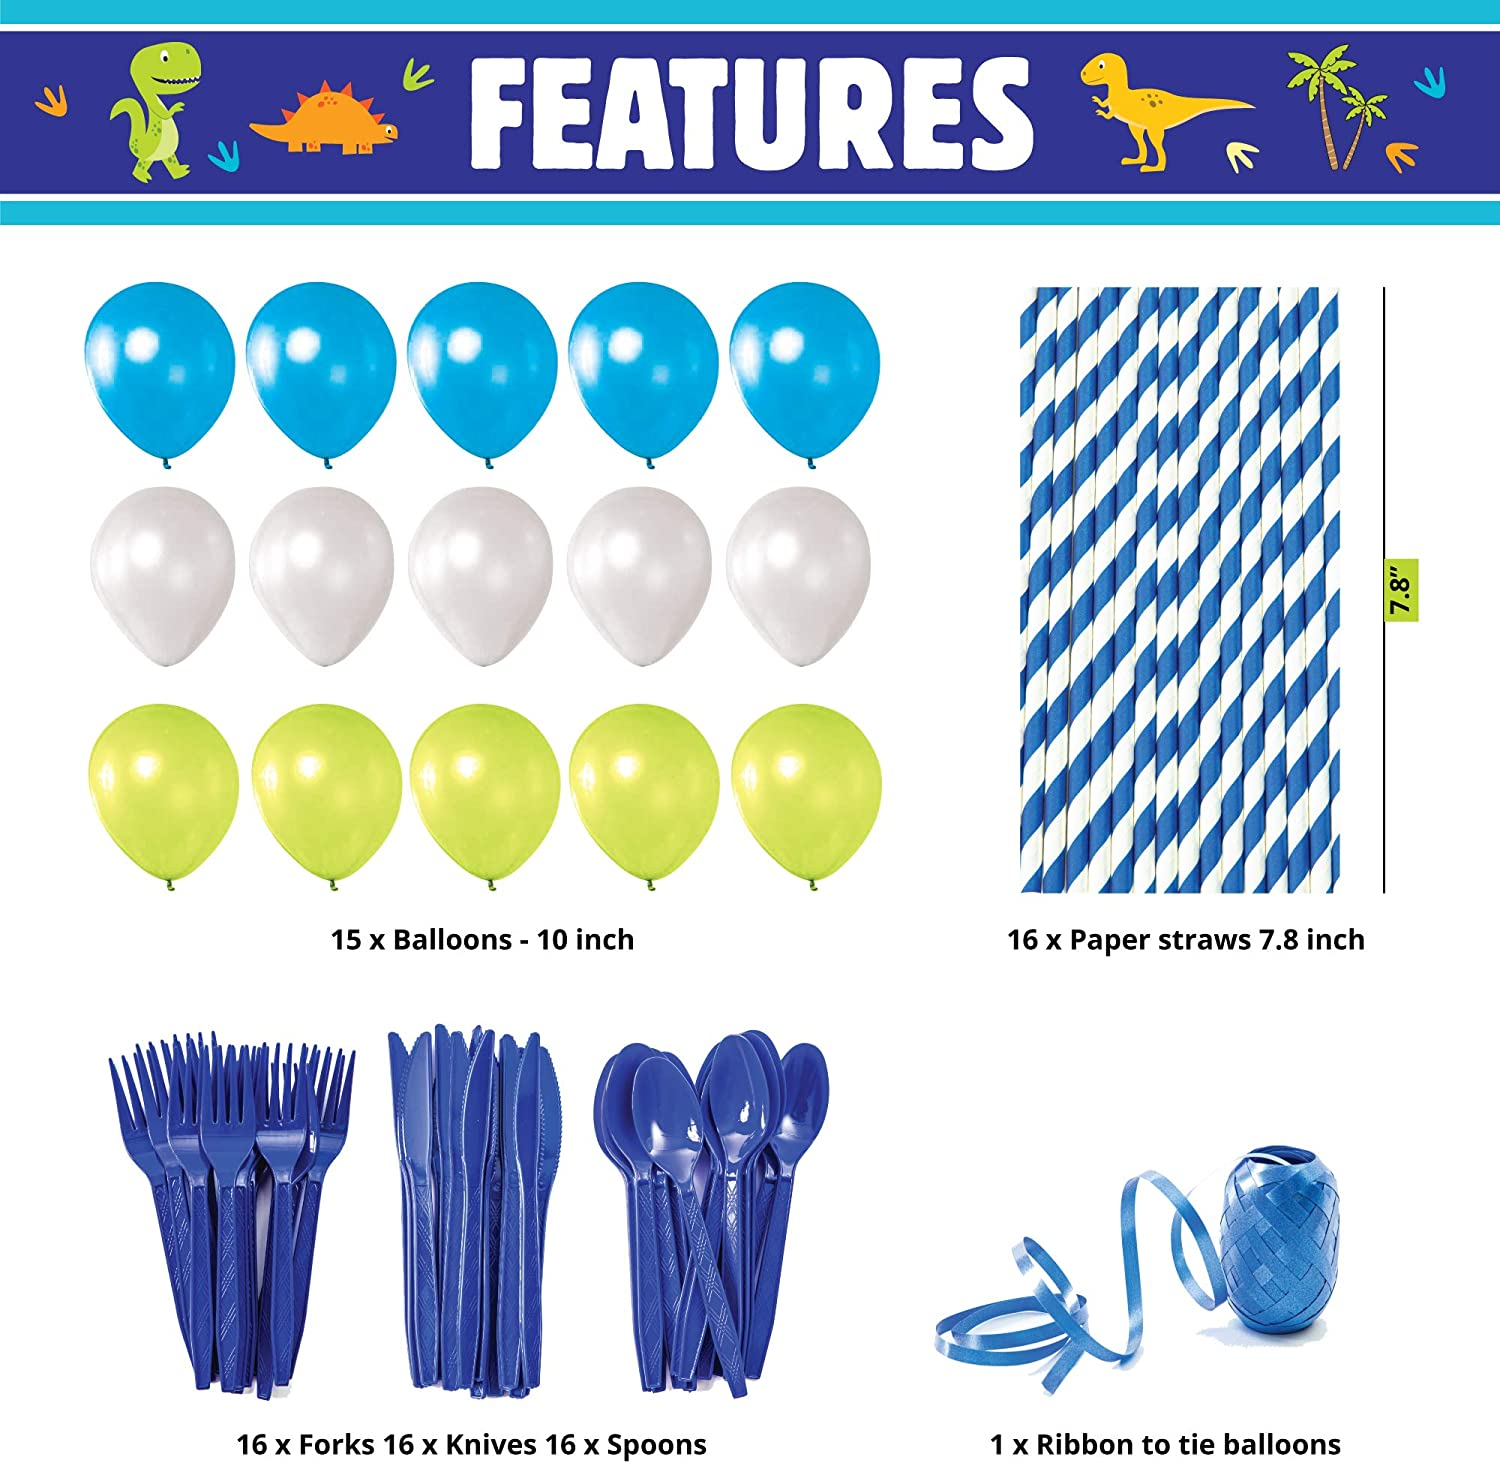 All-in-One Complete Dinosaur Birthday Party Supplies with with Birthday Plates and Dinosaur Party Decorations and Dinosaur Decor for Boys Utensils Cups Napkins Whoobli Dinosaur Party Supplies